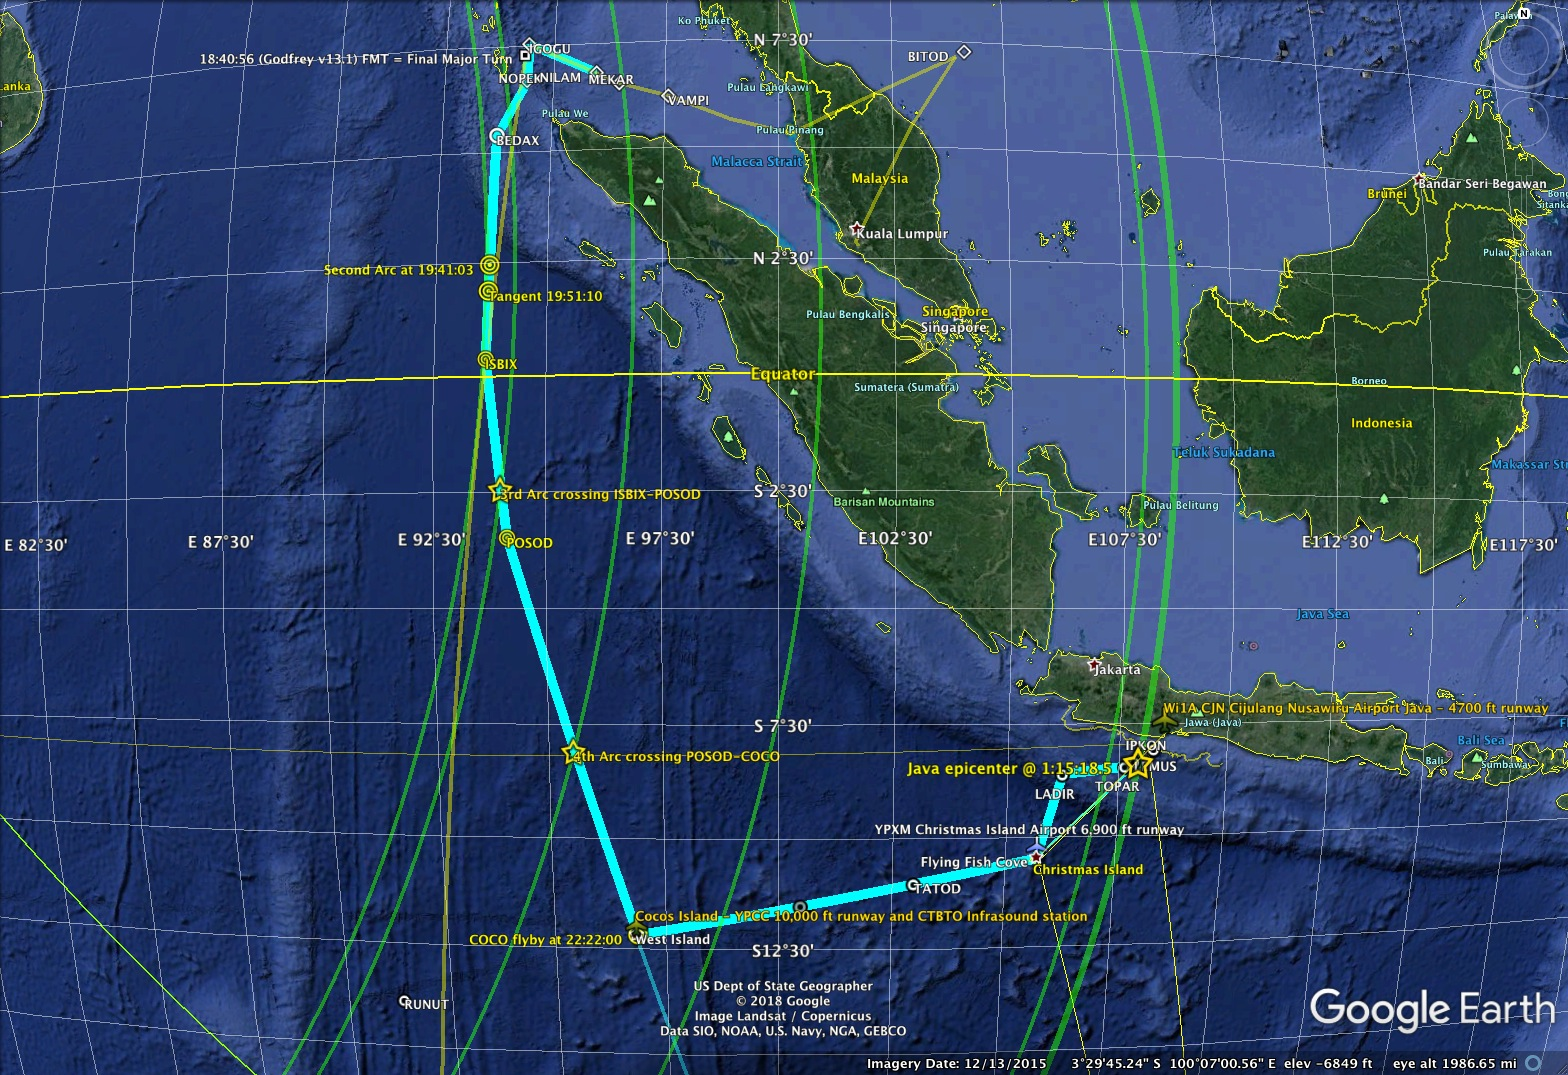 MH370 waypoint path map image.